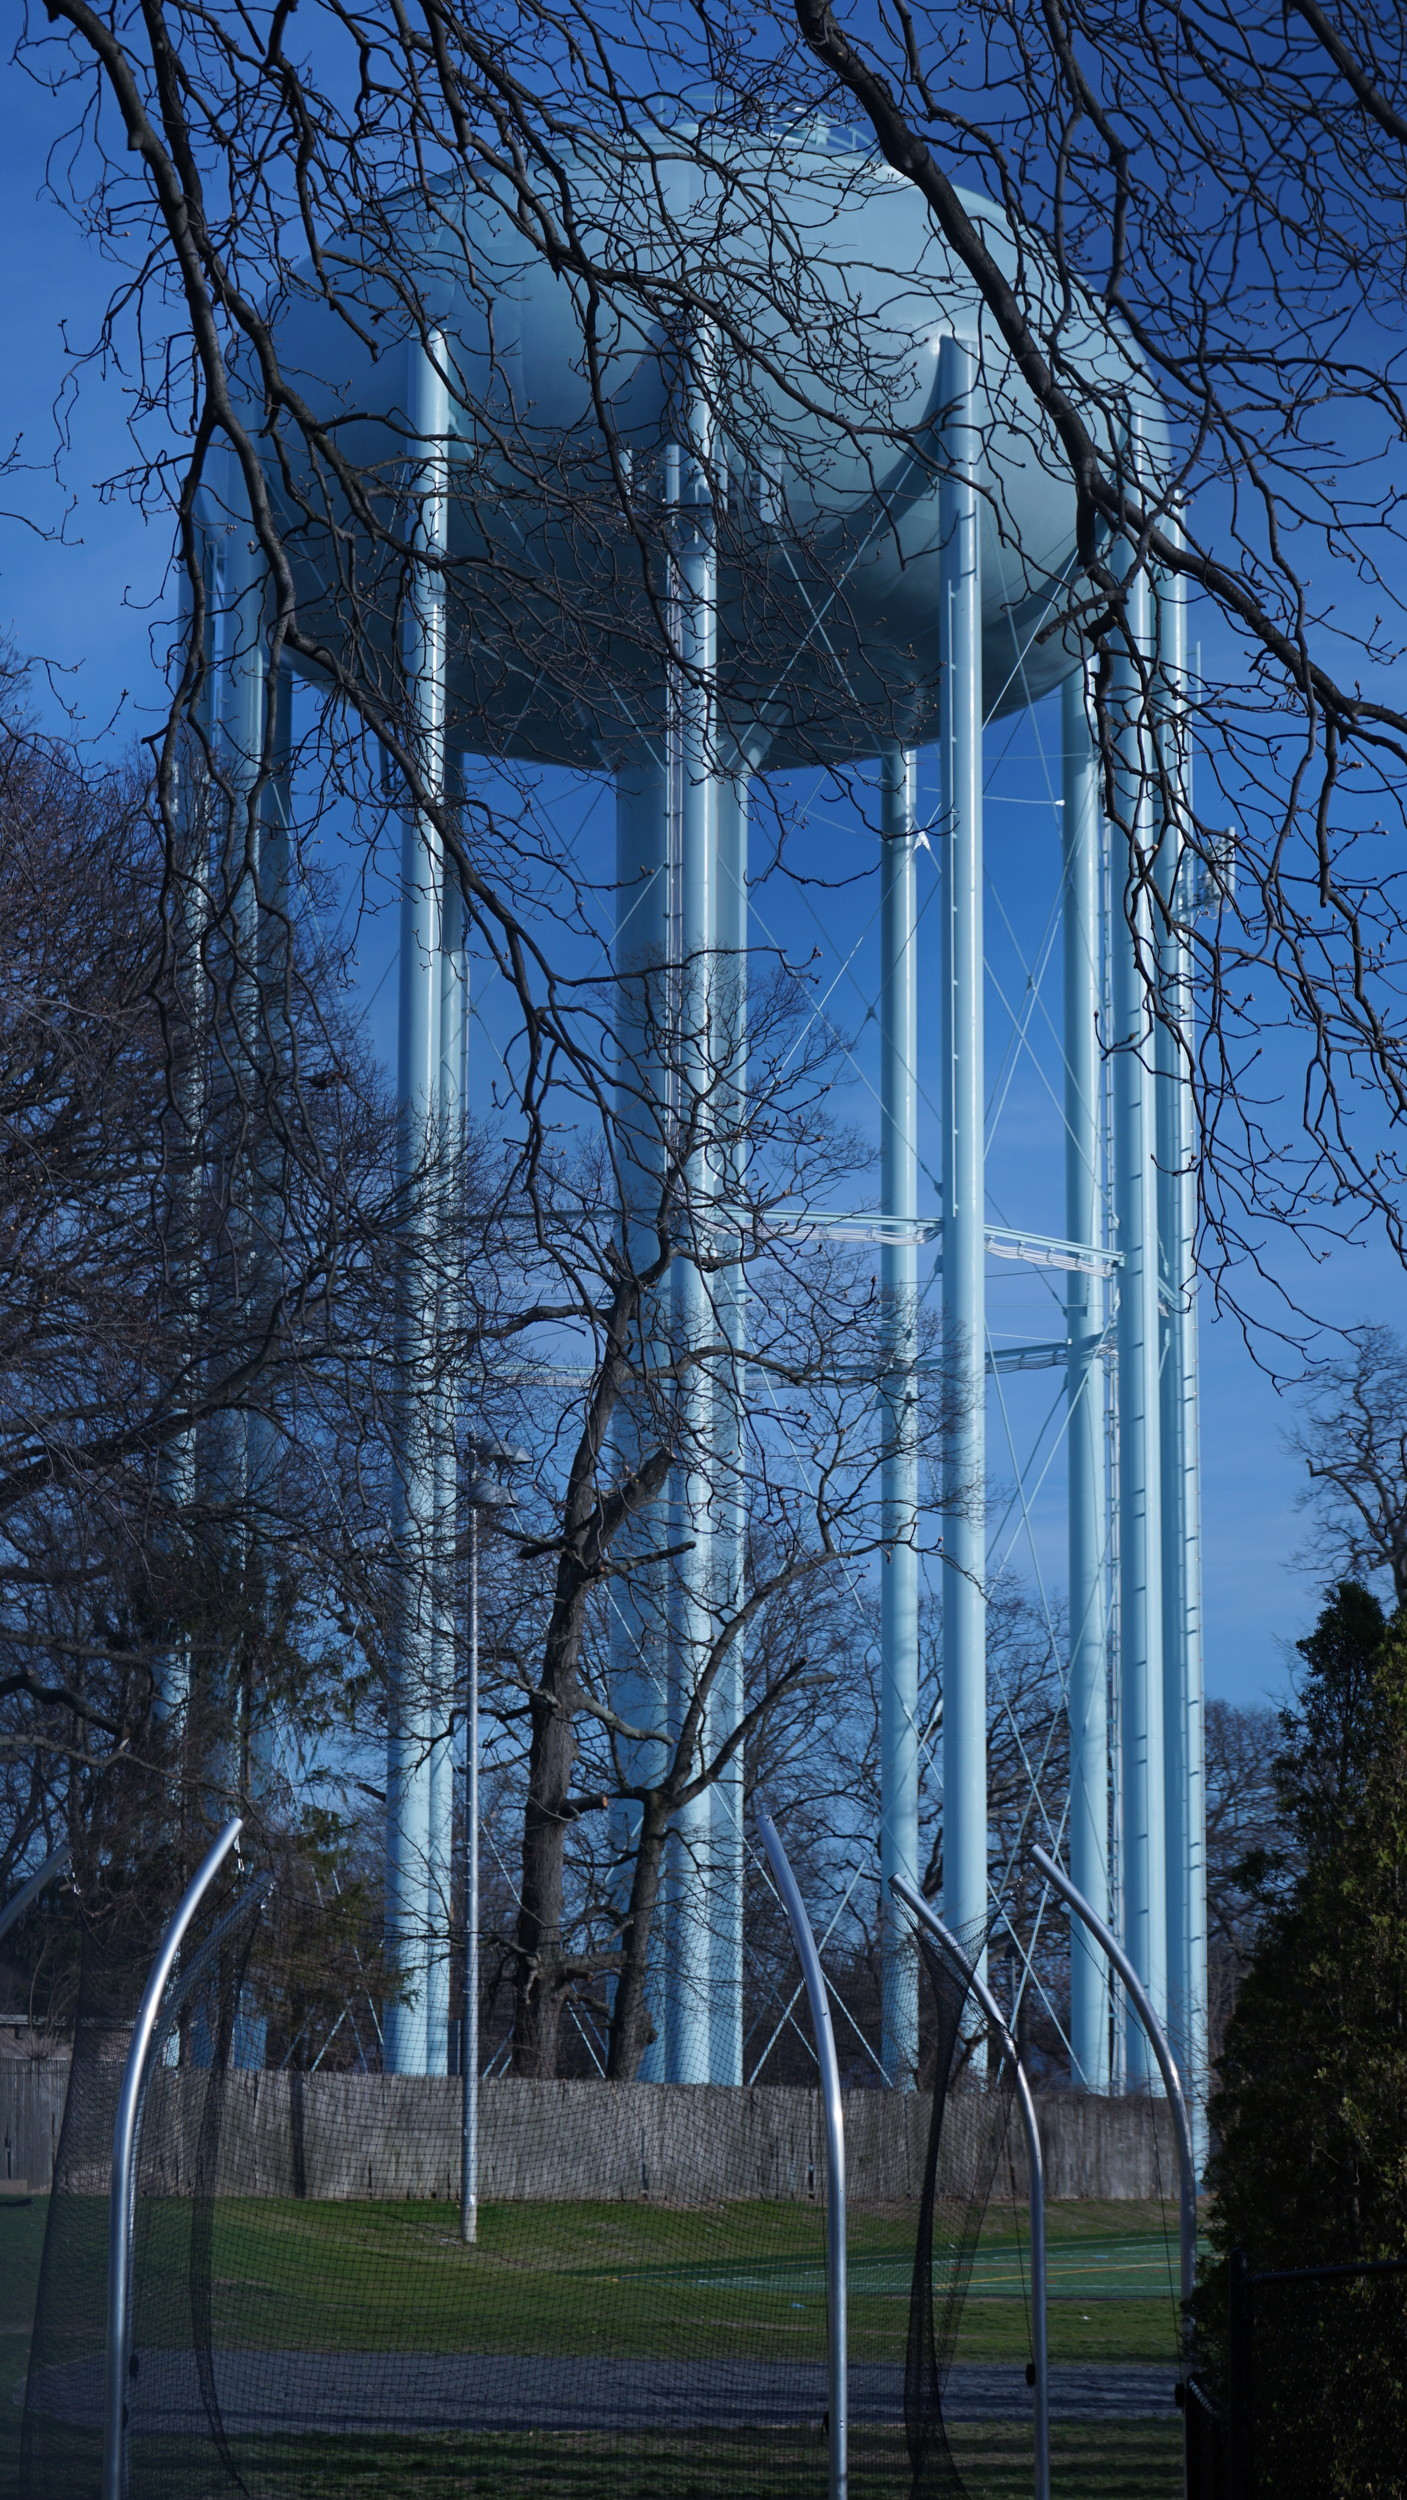 The last village water tower to be repainted was tower No. 1 by South Side High School in 2015.